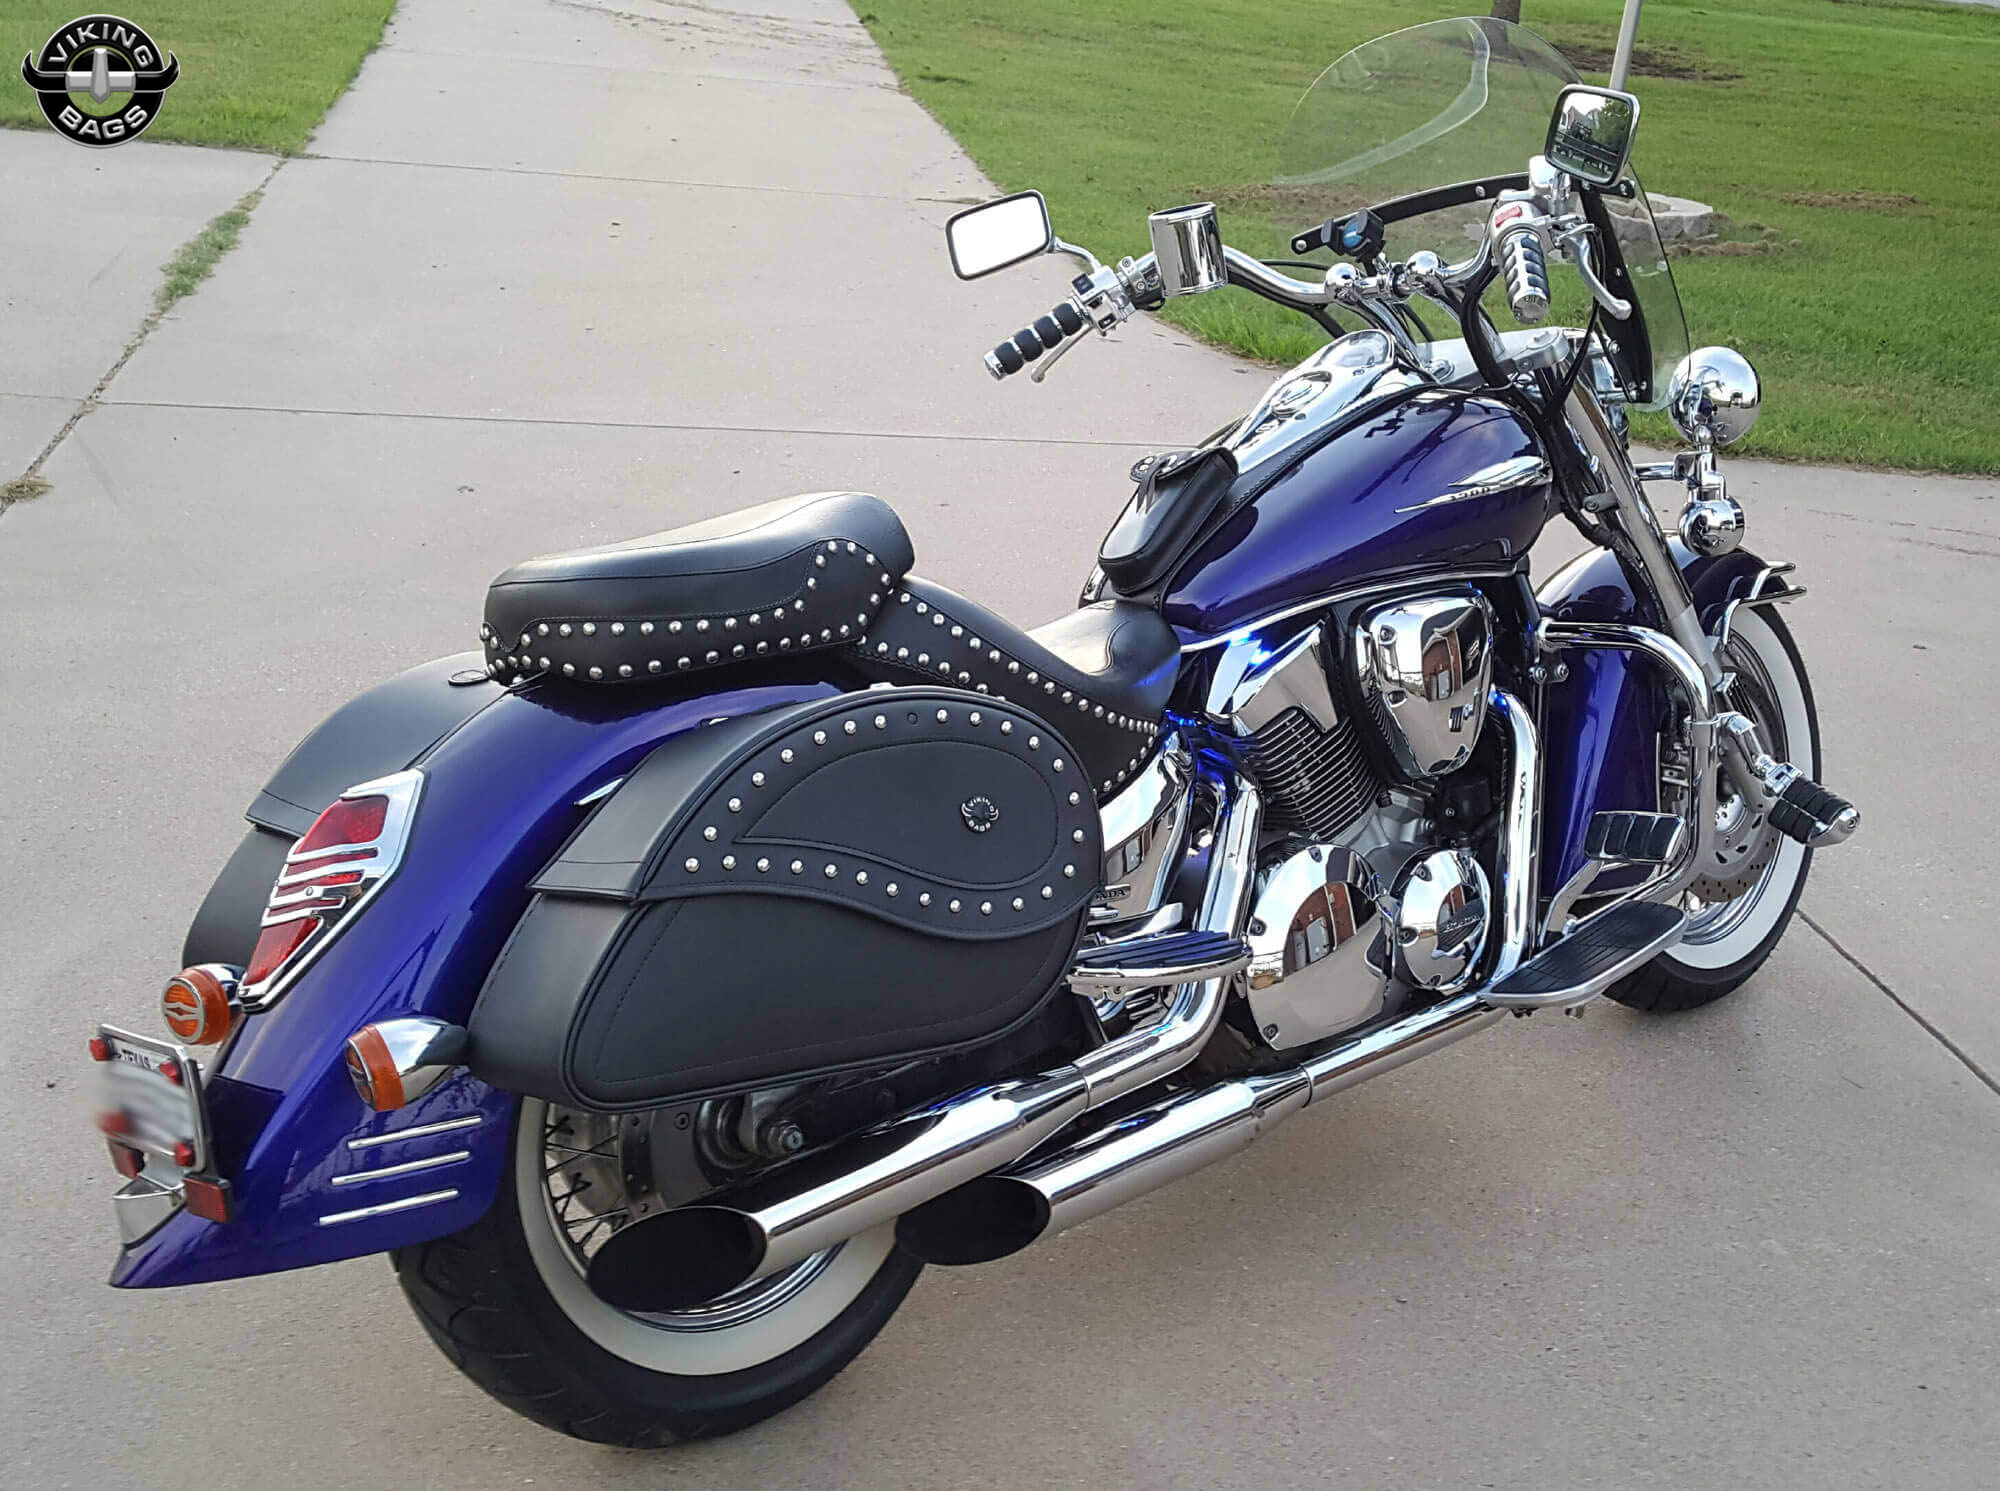 ... Michael's '03 Honda VTX 1300 w/ Ultimate Shape Studded Saddlebags